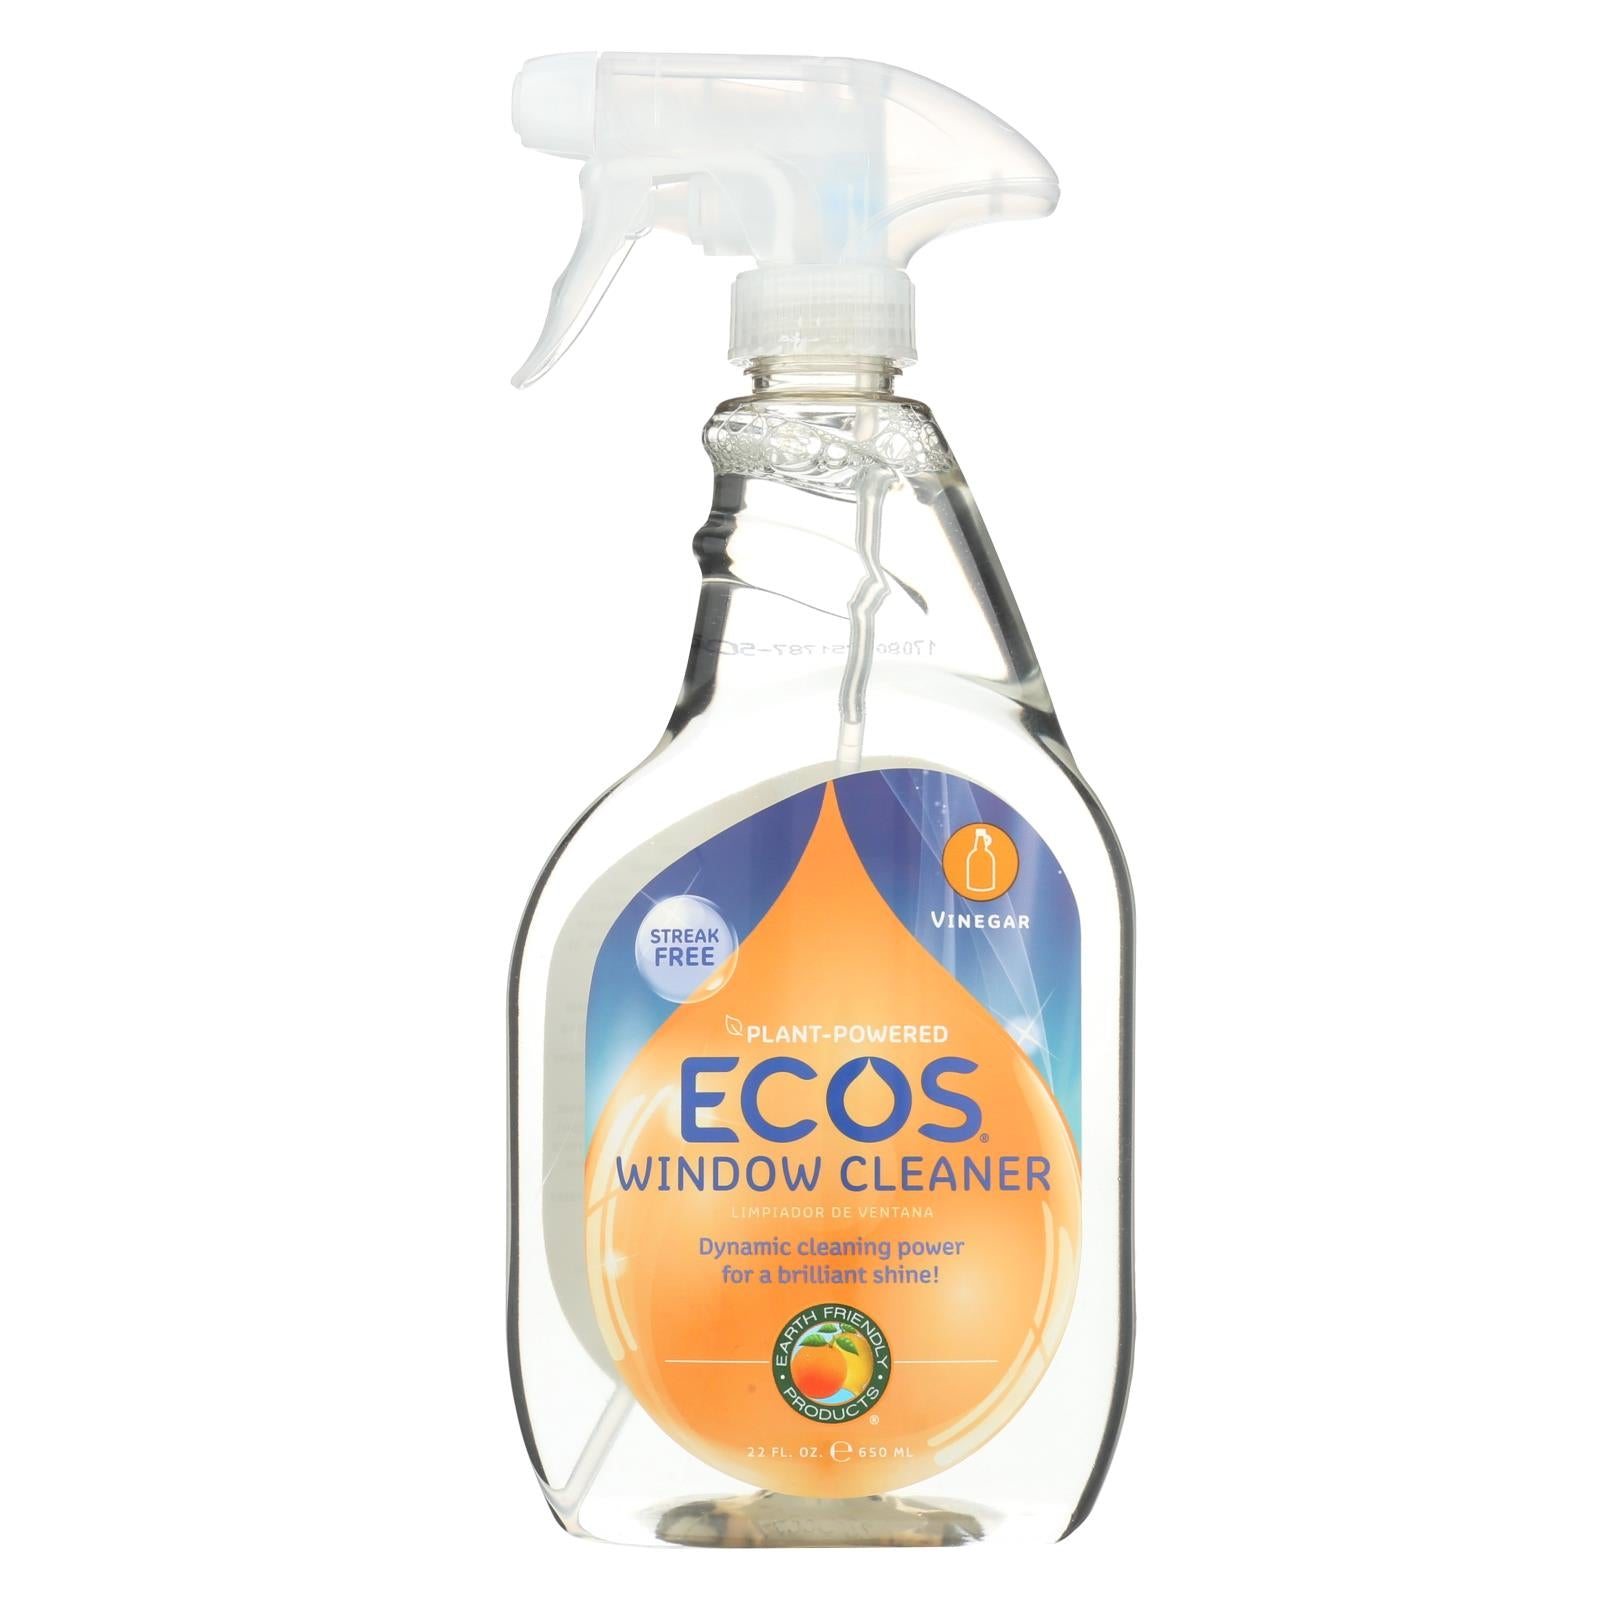 Buy Earth Friendly Window Cleaner - Vinegar - 22 fl oz - Household Cleaners from Veroeco.com